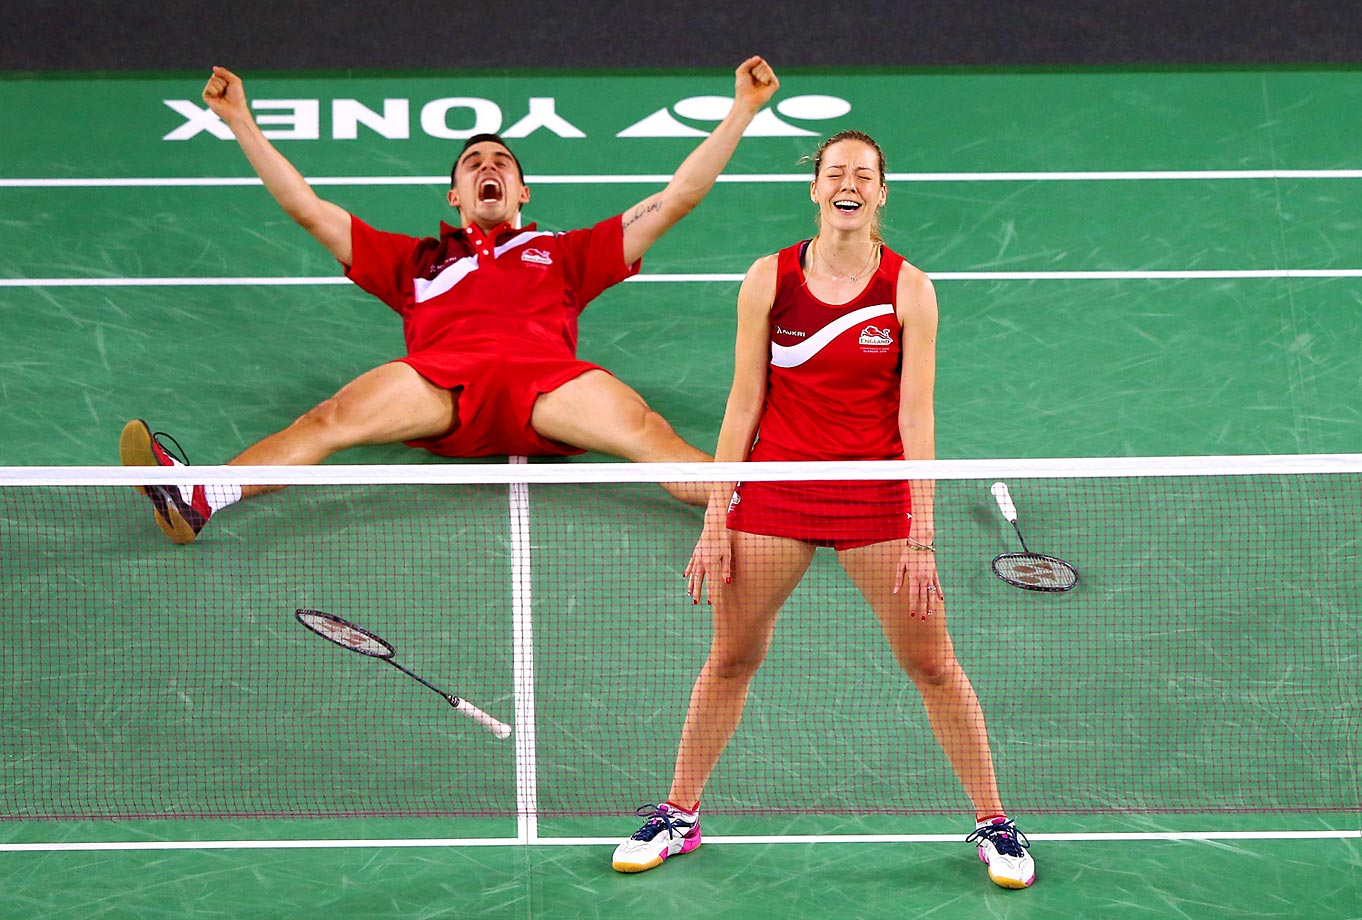 Gabrielle Adcock and Chris Adcock of England celebrate victory in the Mixed Doubles Gold Medal Match against Chris Langridge and Heather Olver of England at Emirates Arena during Day Eleven of the Glasgow 2014 Commonwealth Games on August 3, 2014 in Glasgow, United Kingdom.